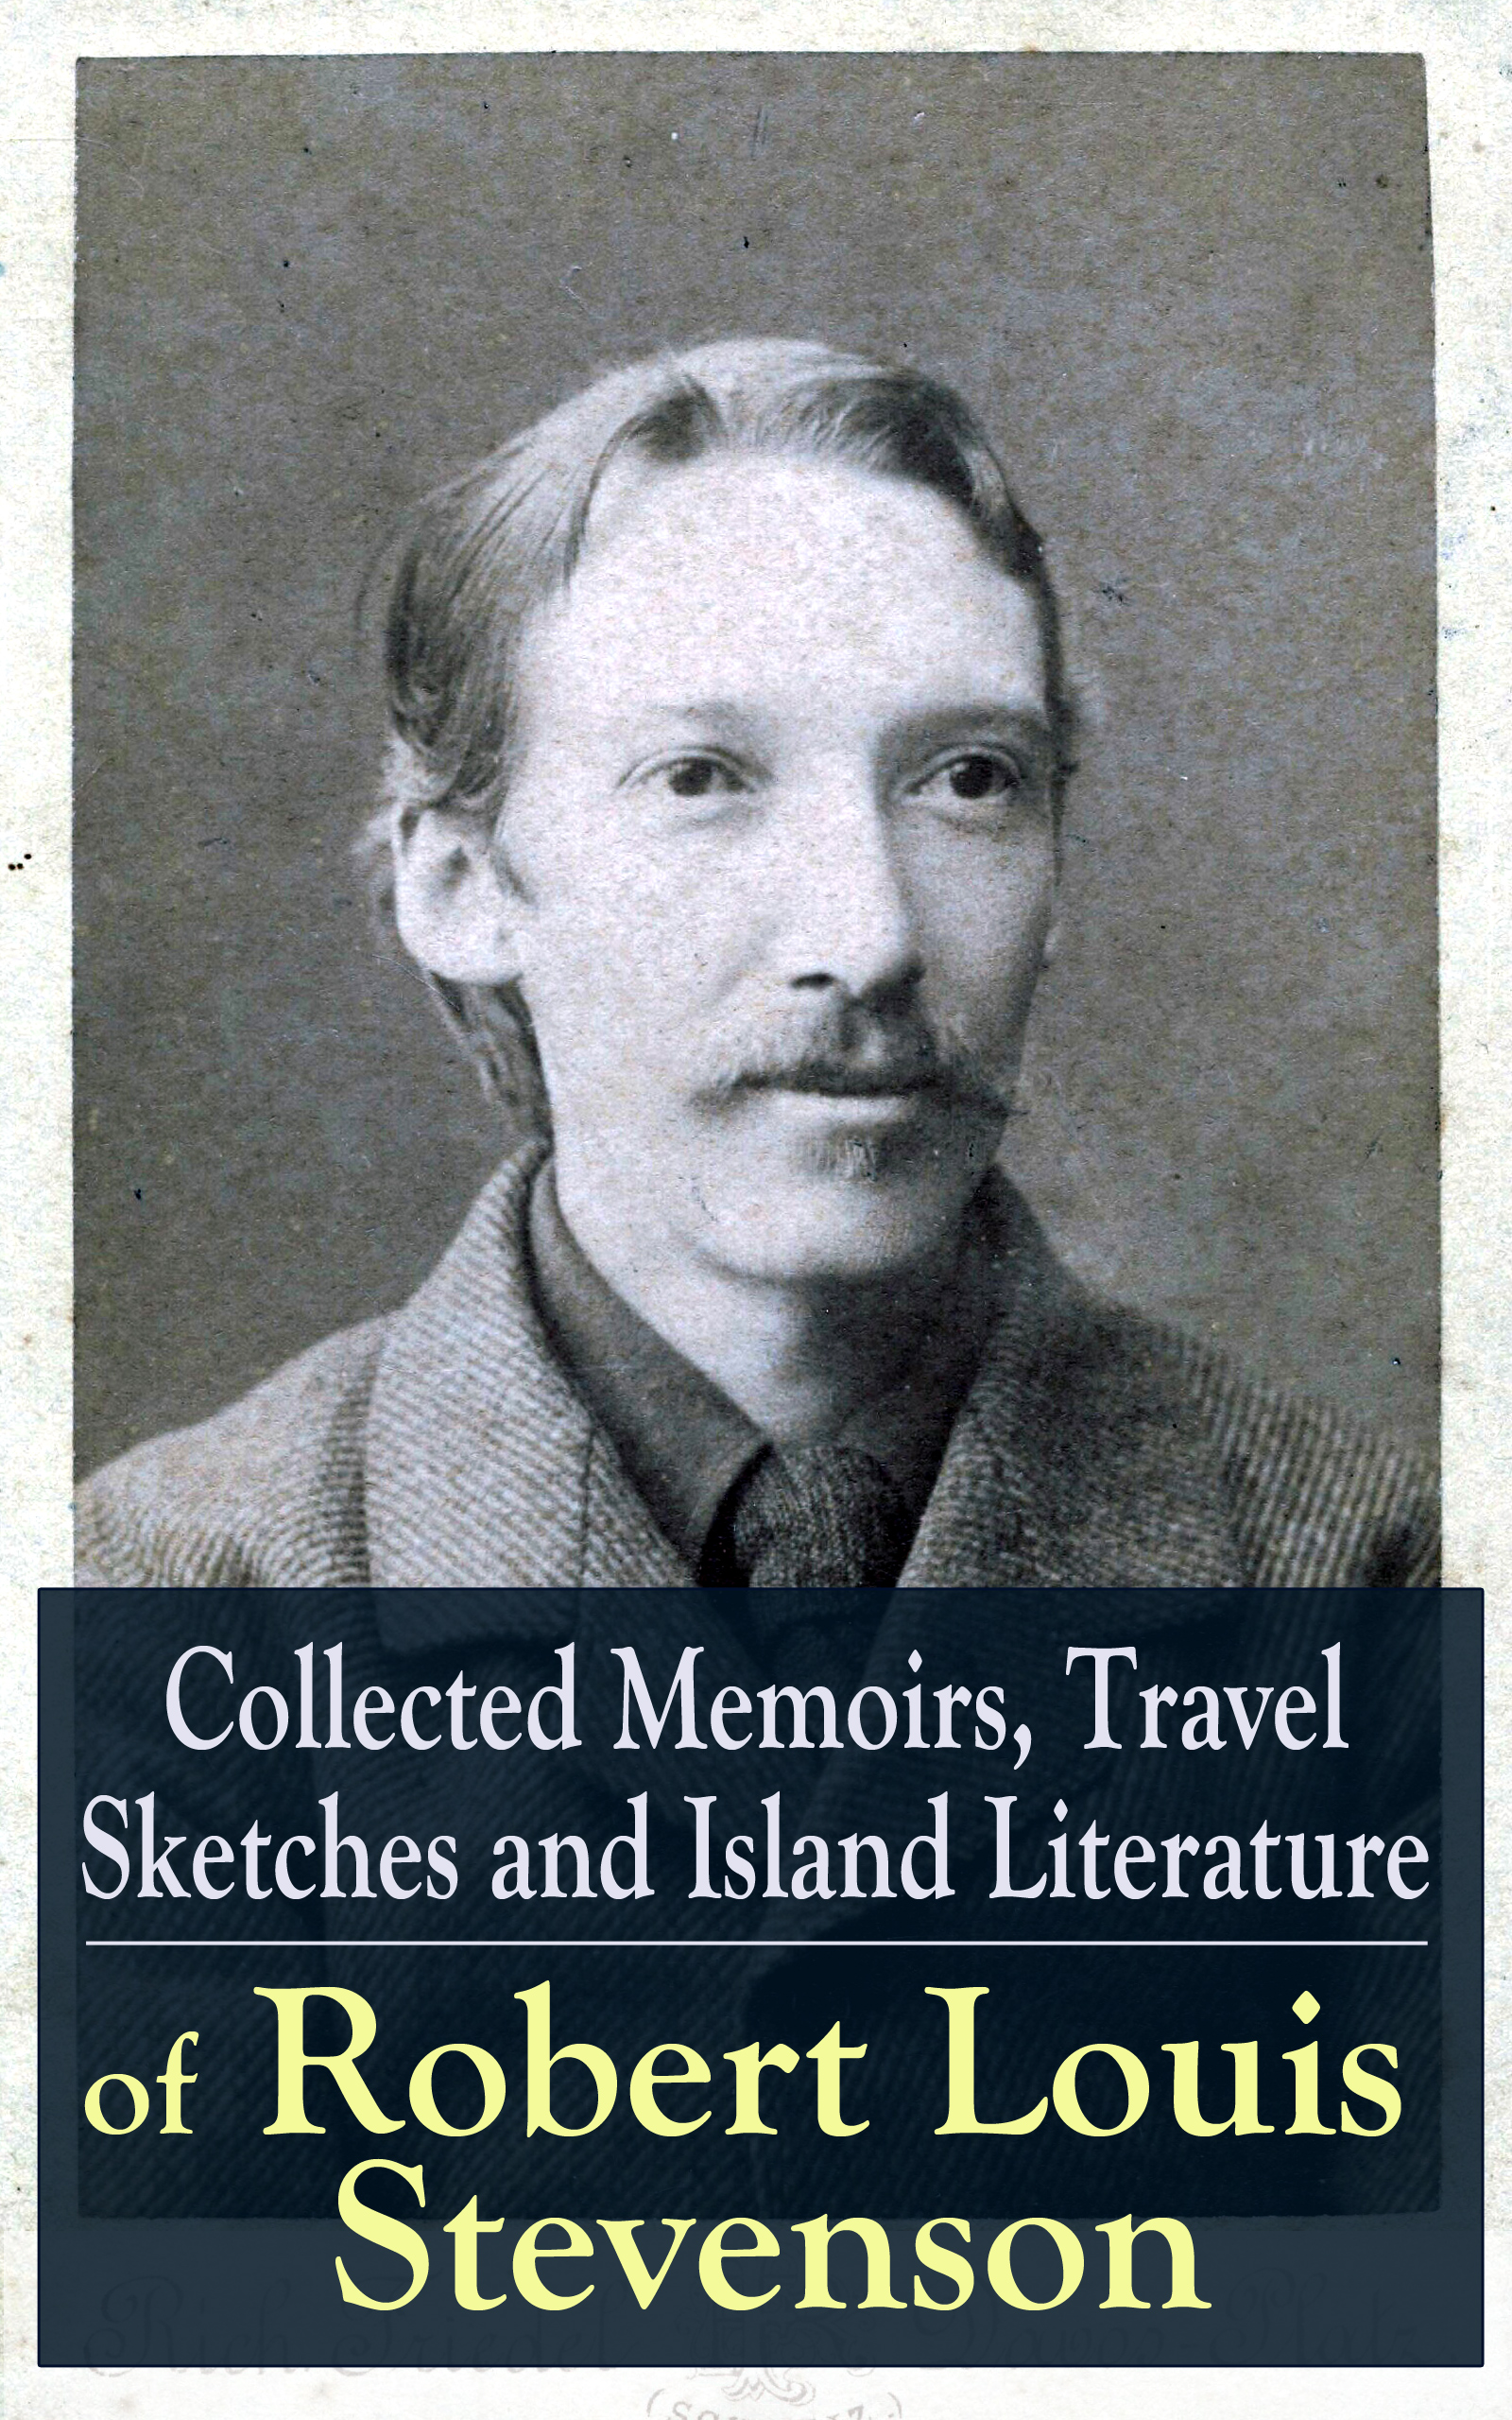 Robert Louis Stevenson Collected Memoirs, Travel Sketches and Island Literature of Robert Louis Stevenson